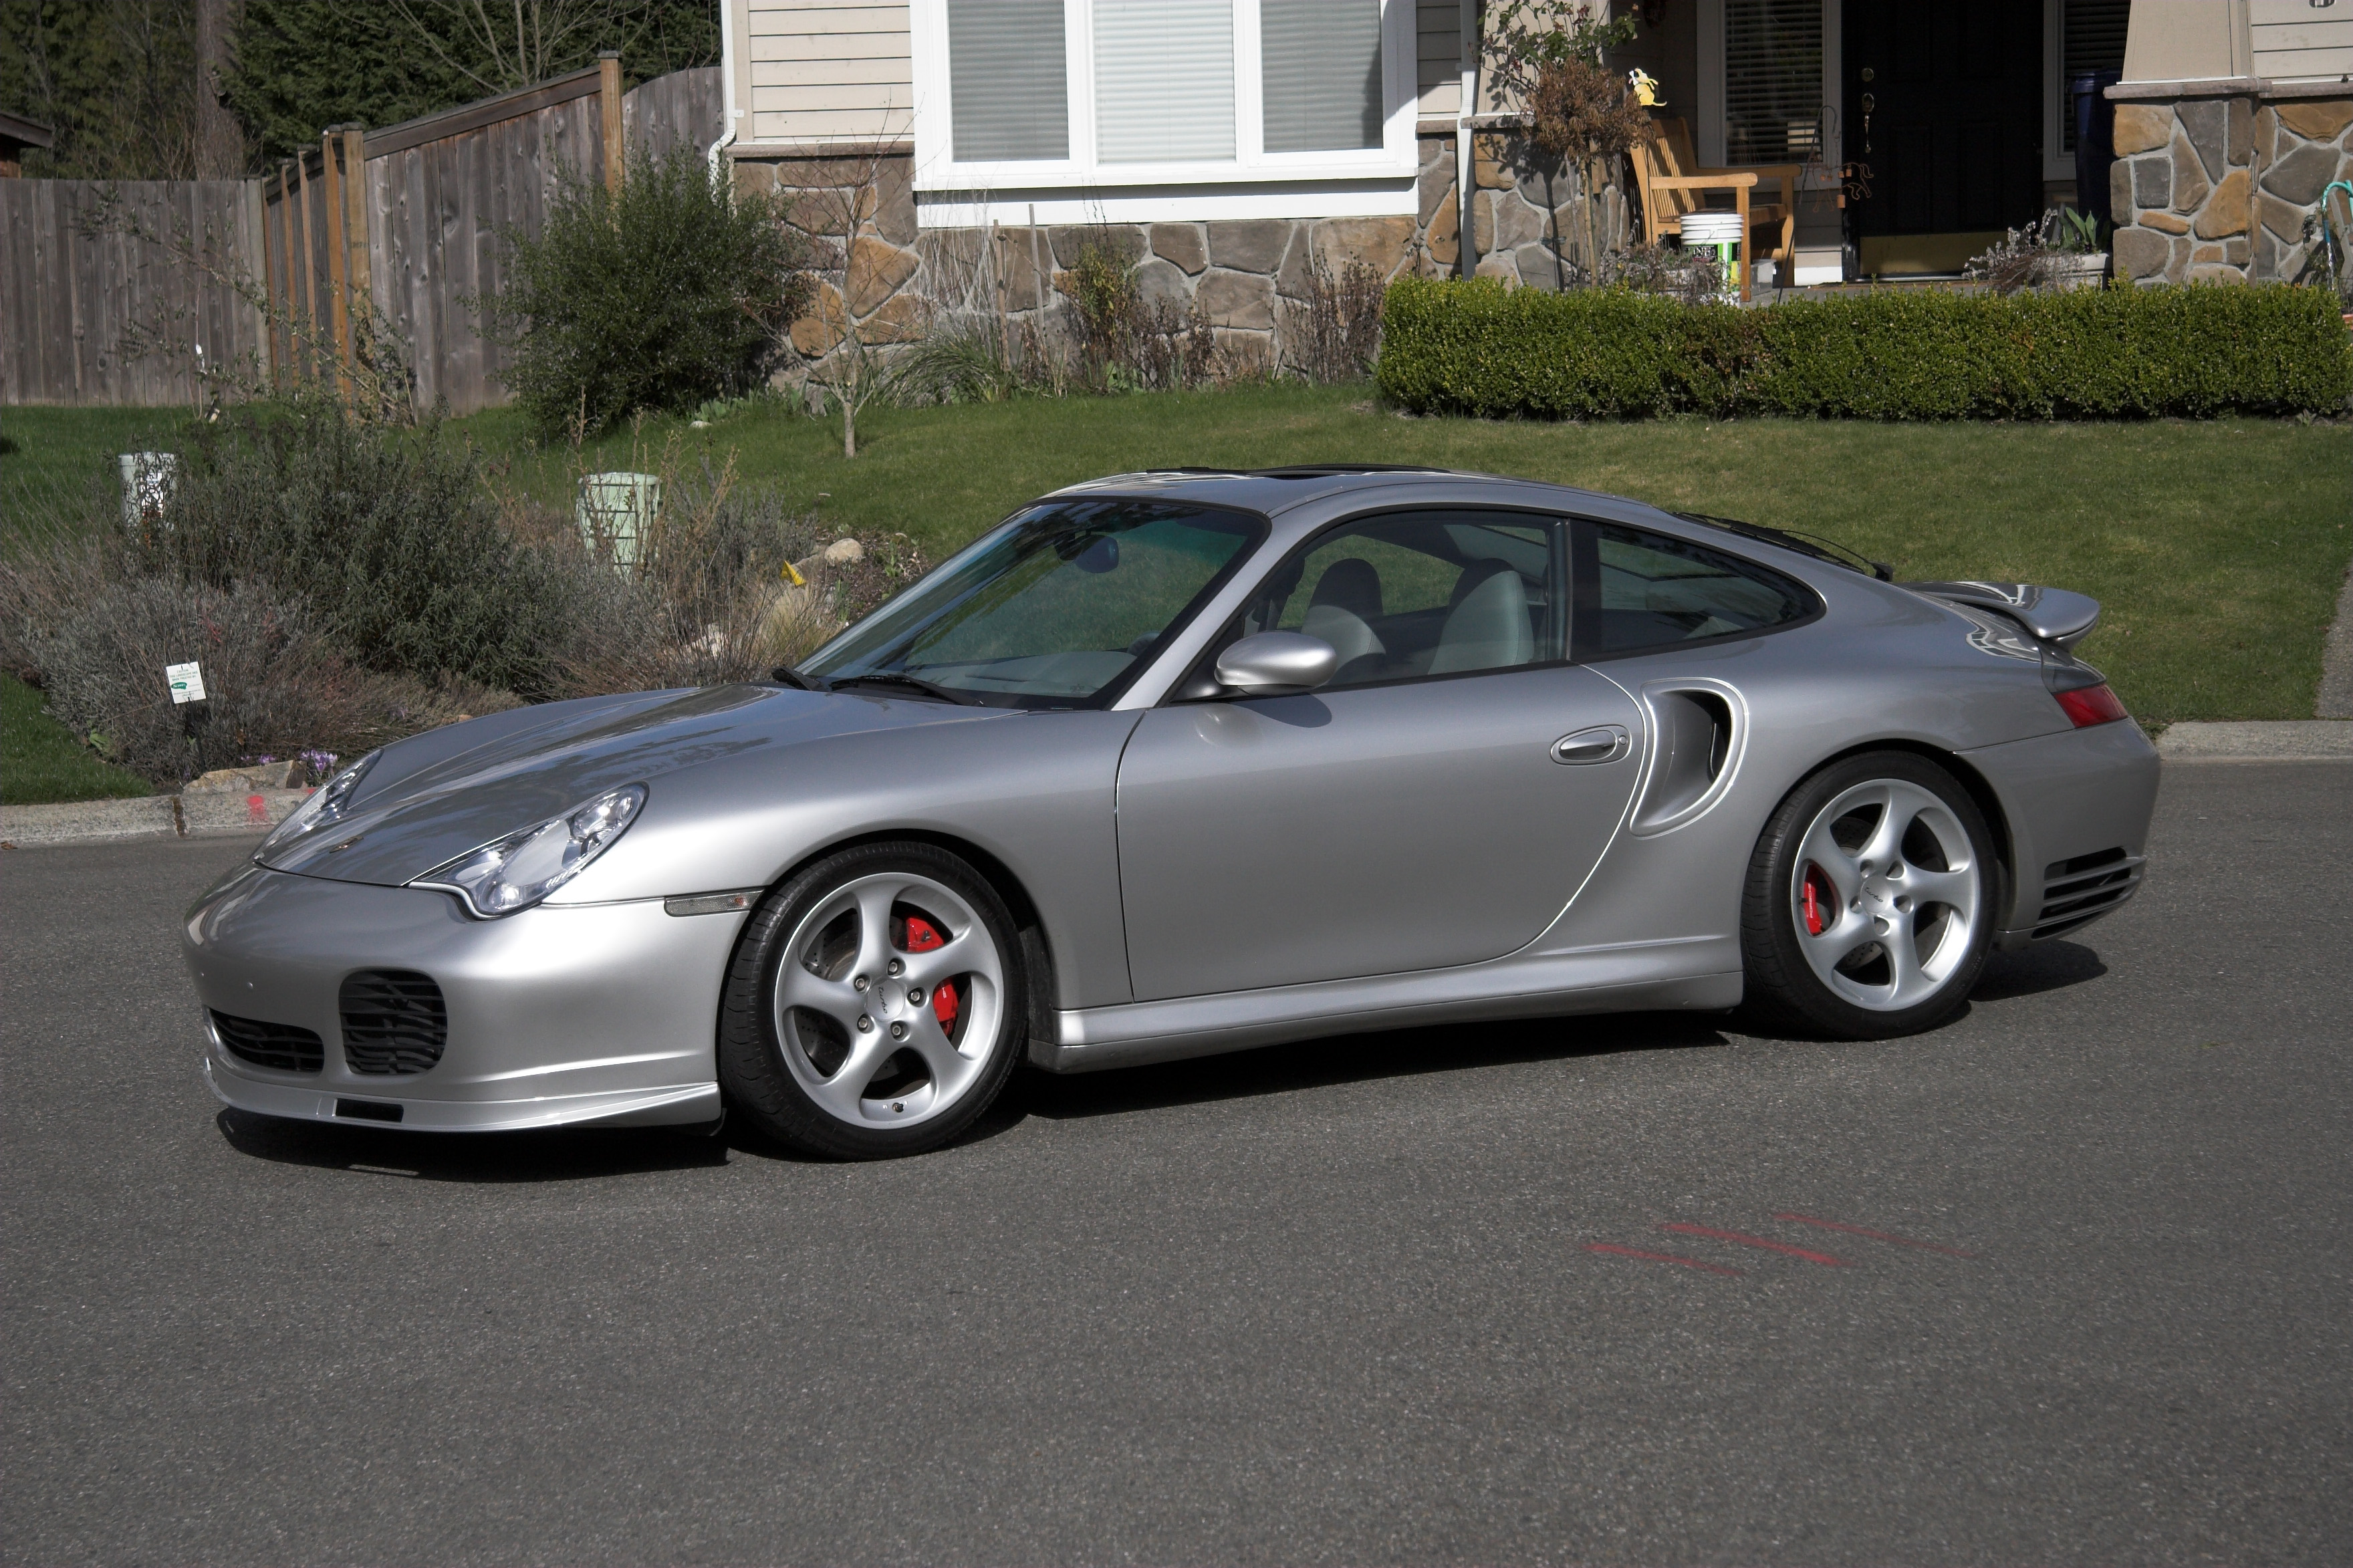 Porsche 911 Turbo 1999 Review Amazing Pictures And